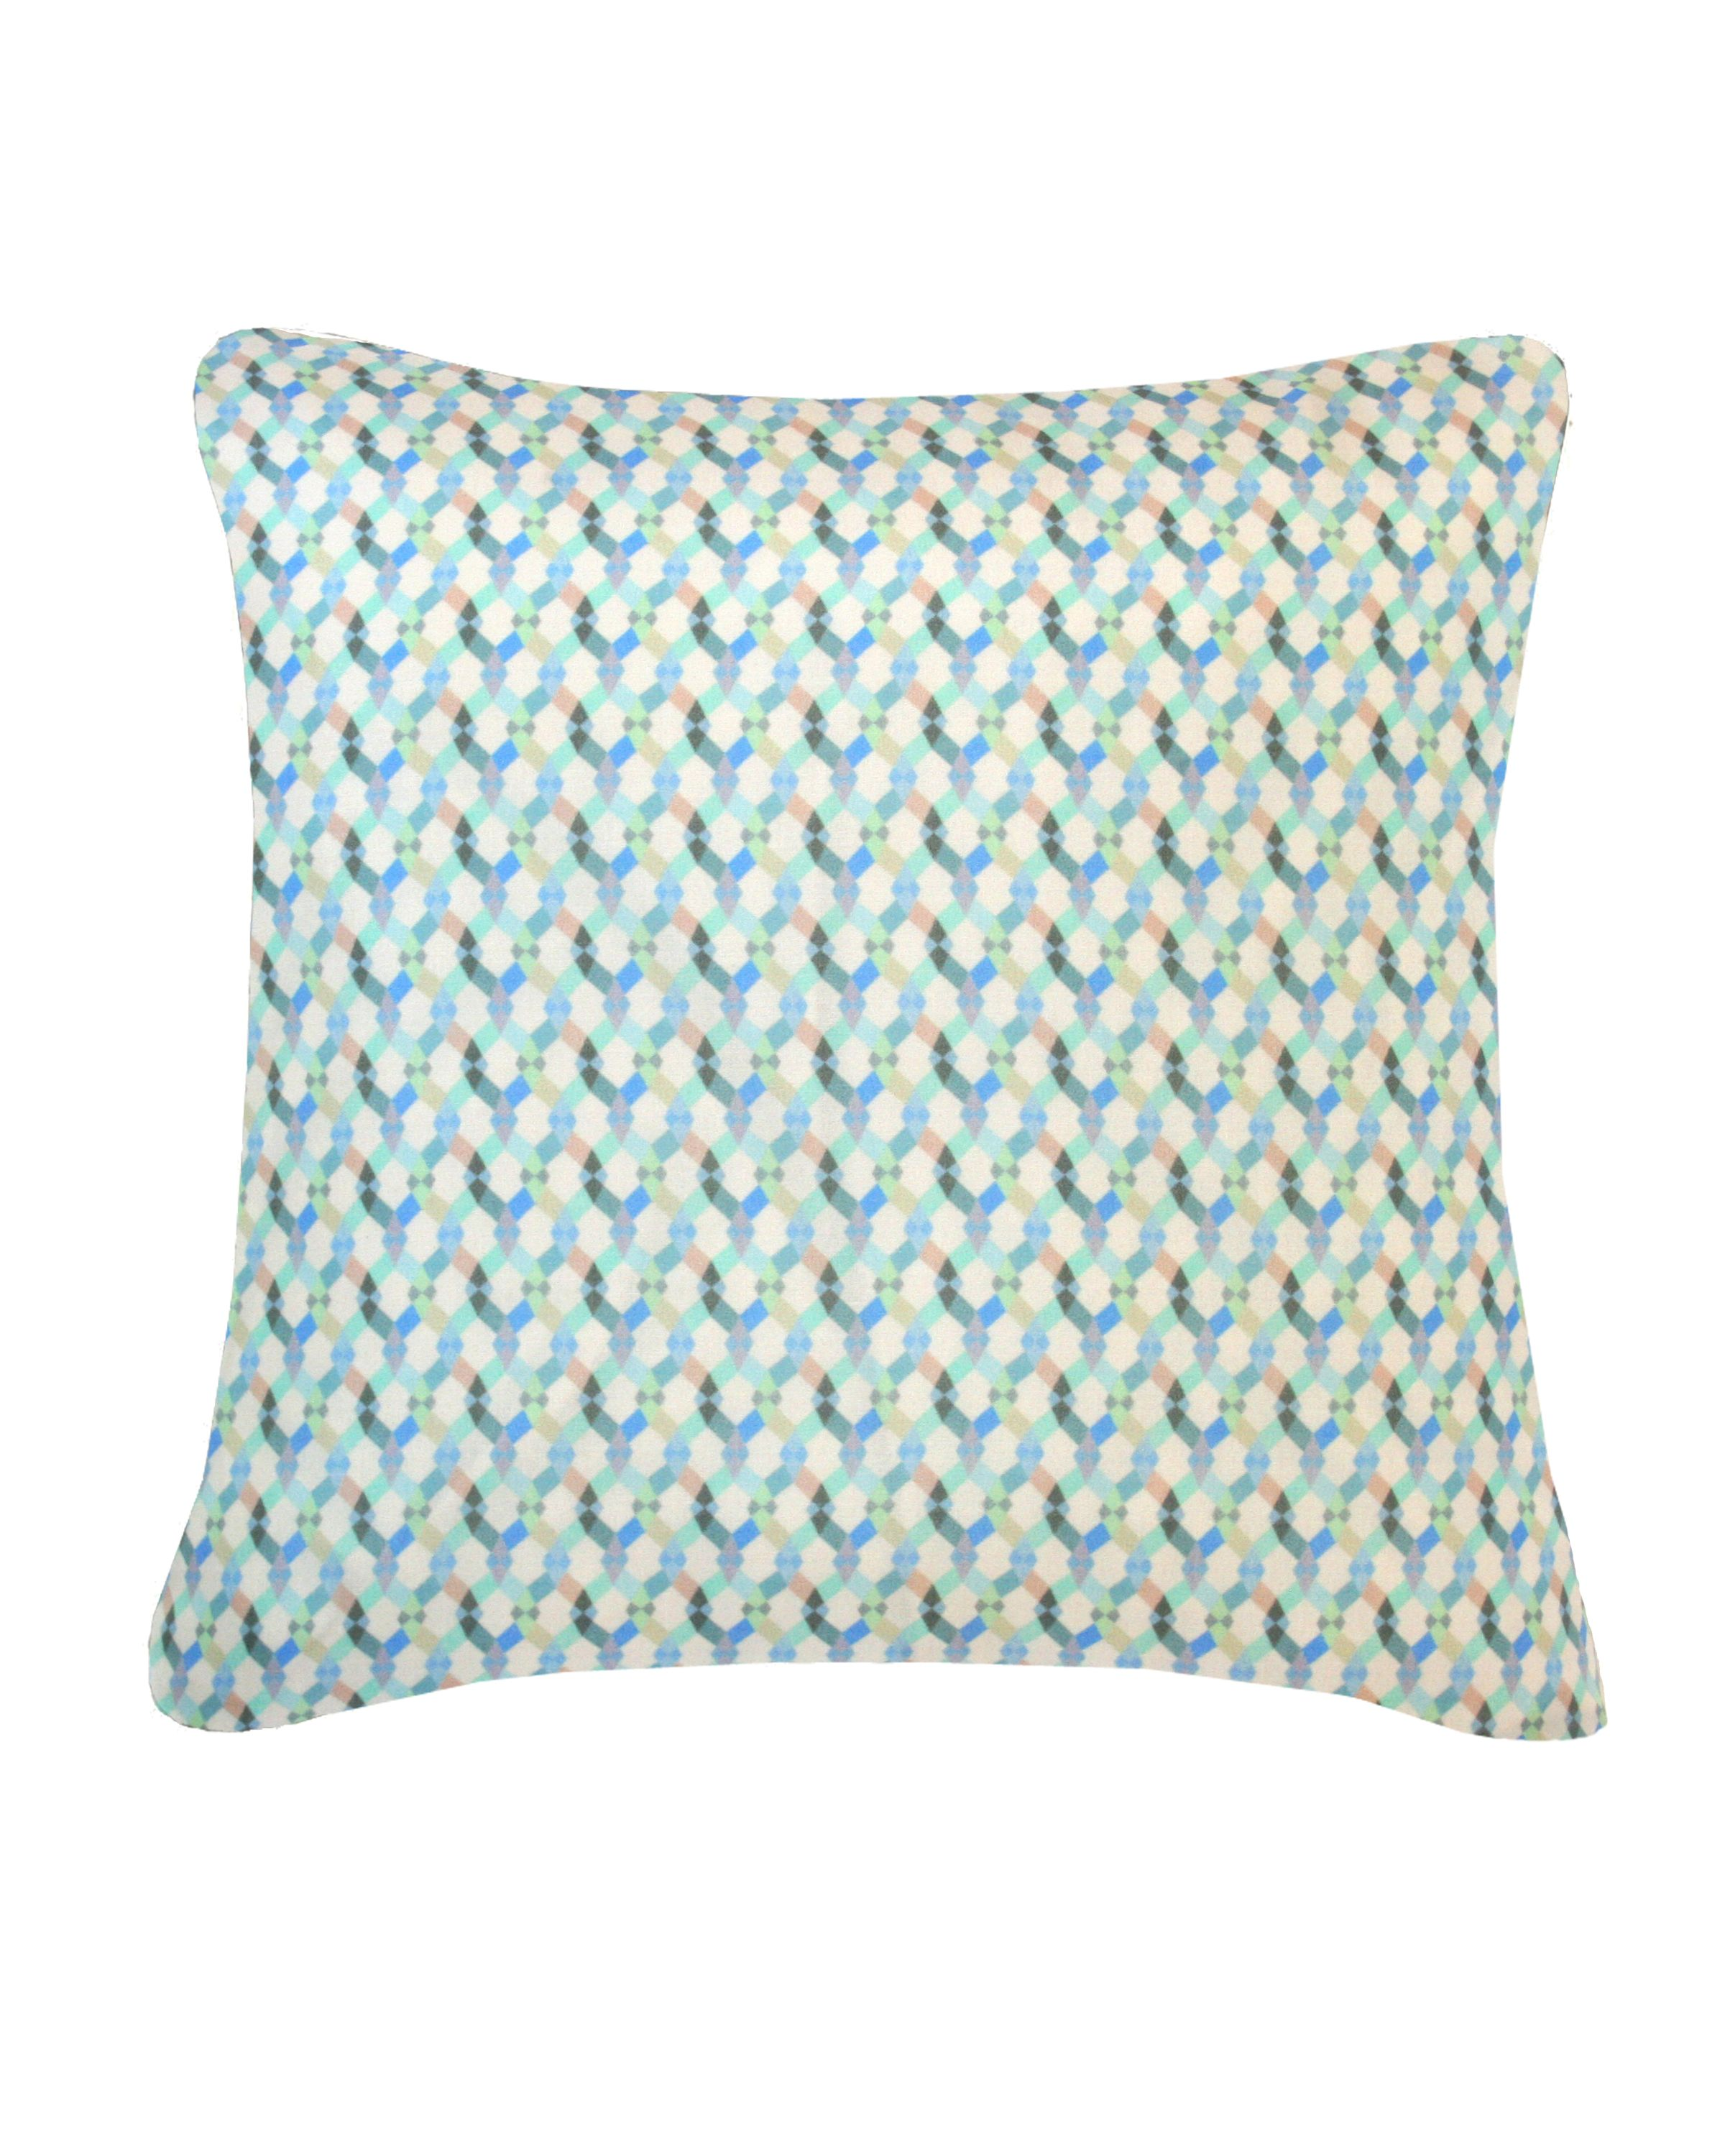 Image of Nitin Goyal Small Braids cushion in blue 45x45